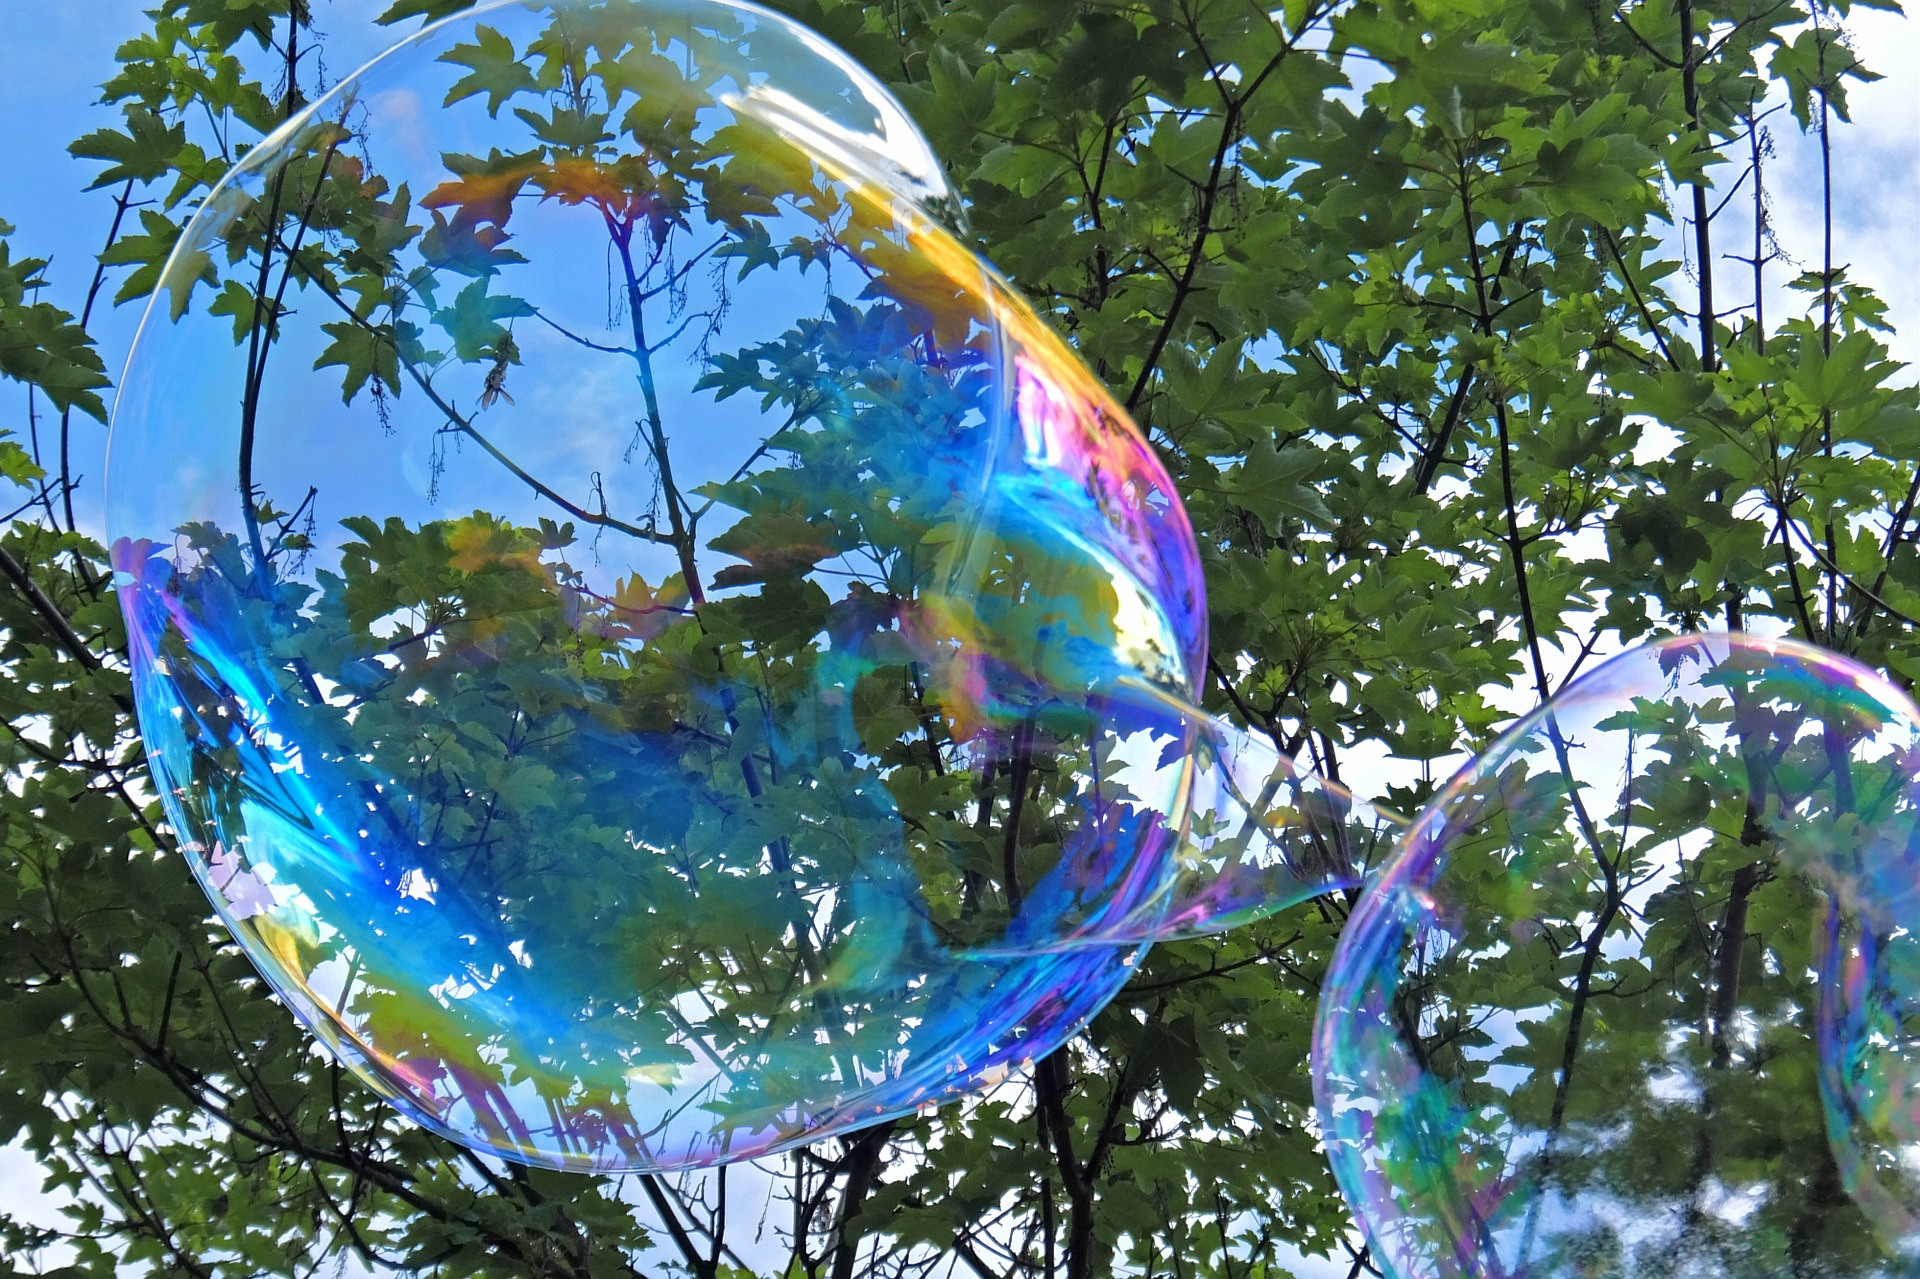 soap-bubble-1388505_1920